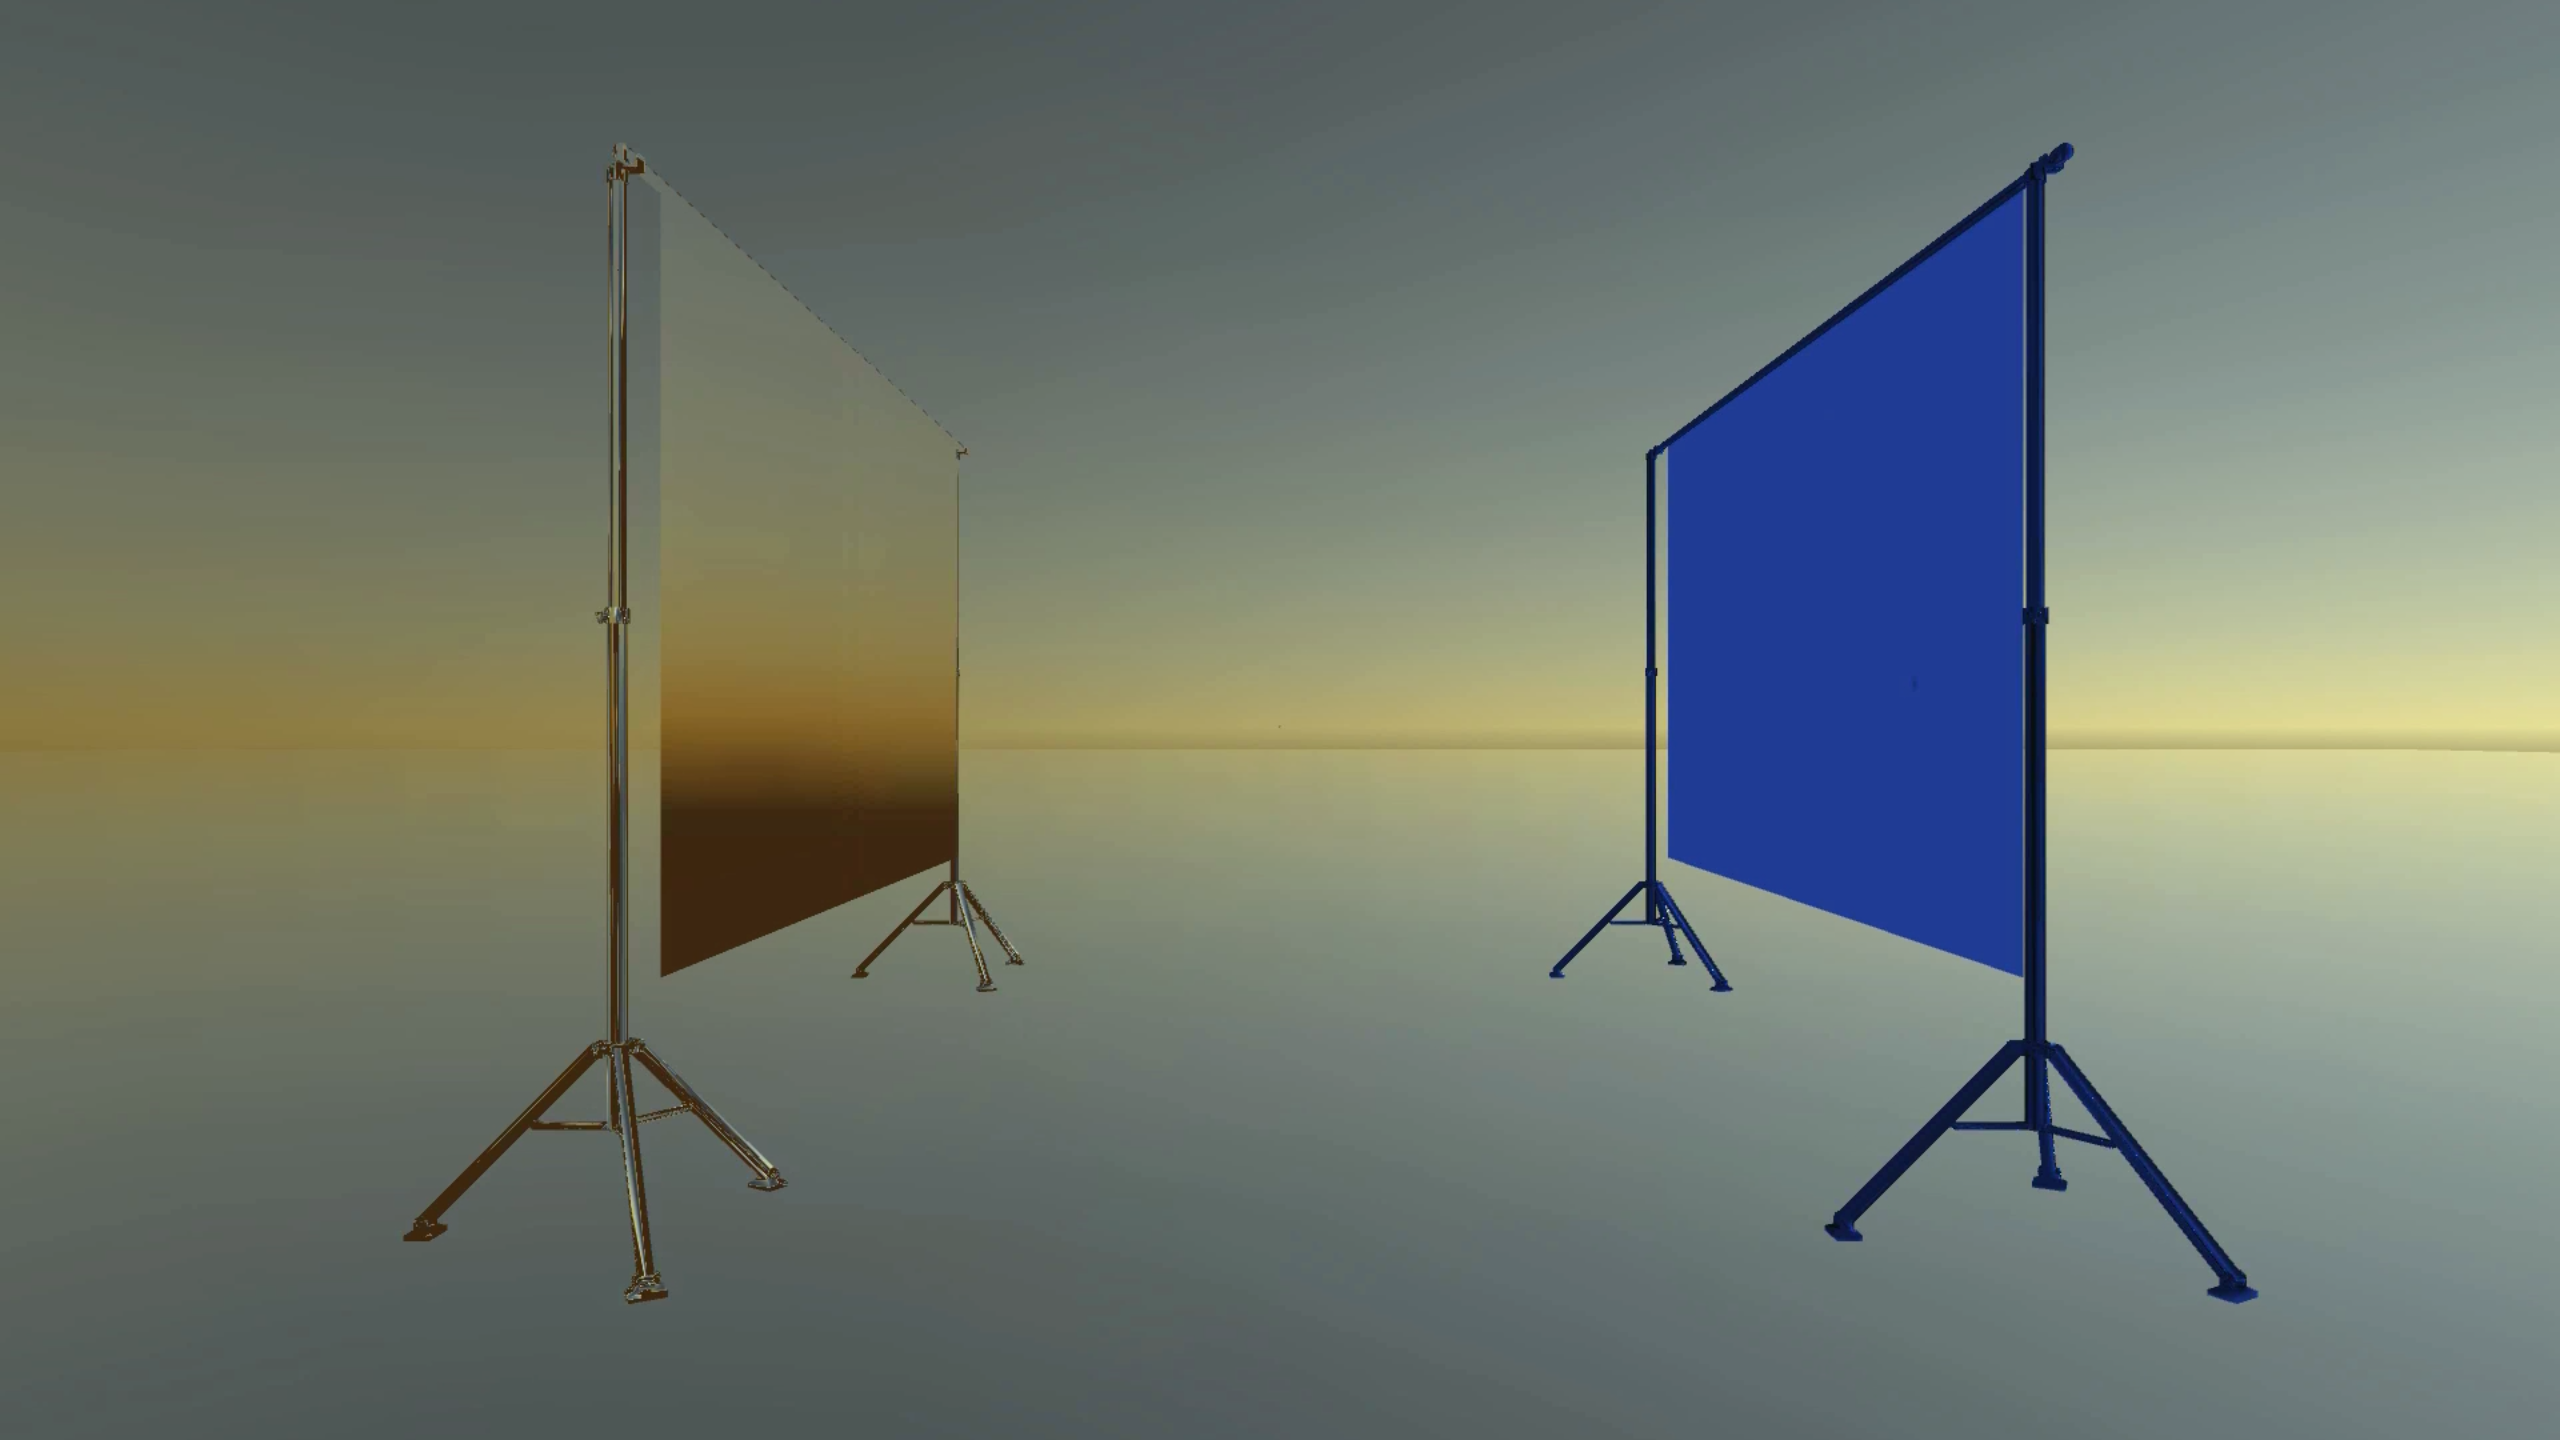 Digital graphic of two presentation boards facing each other